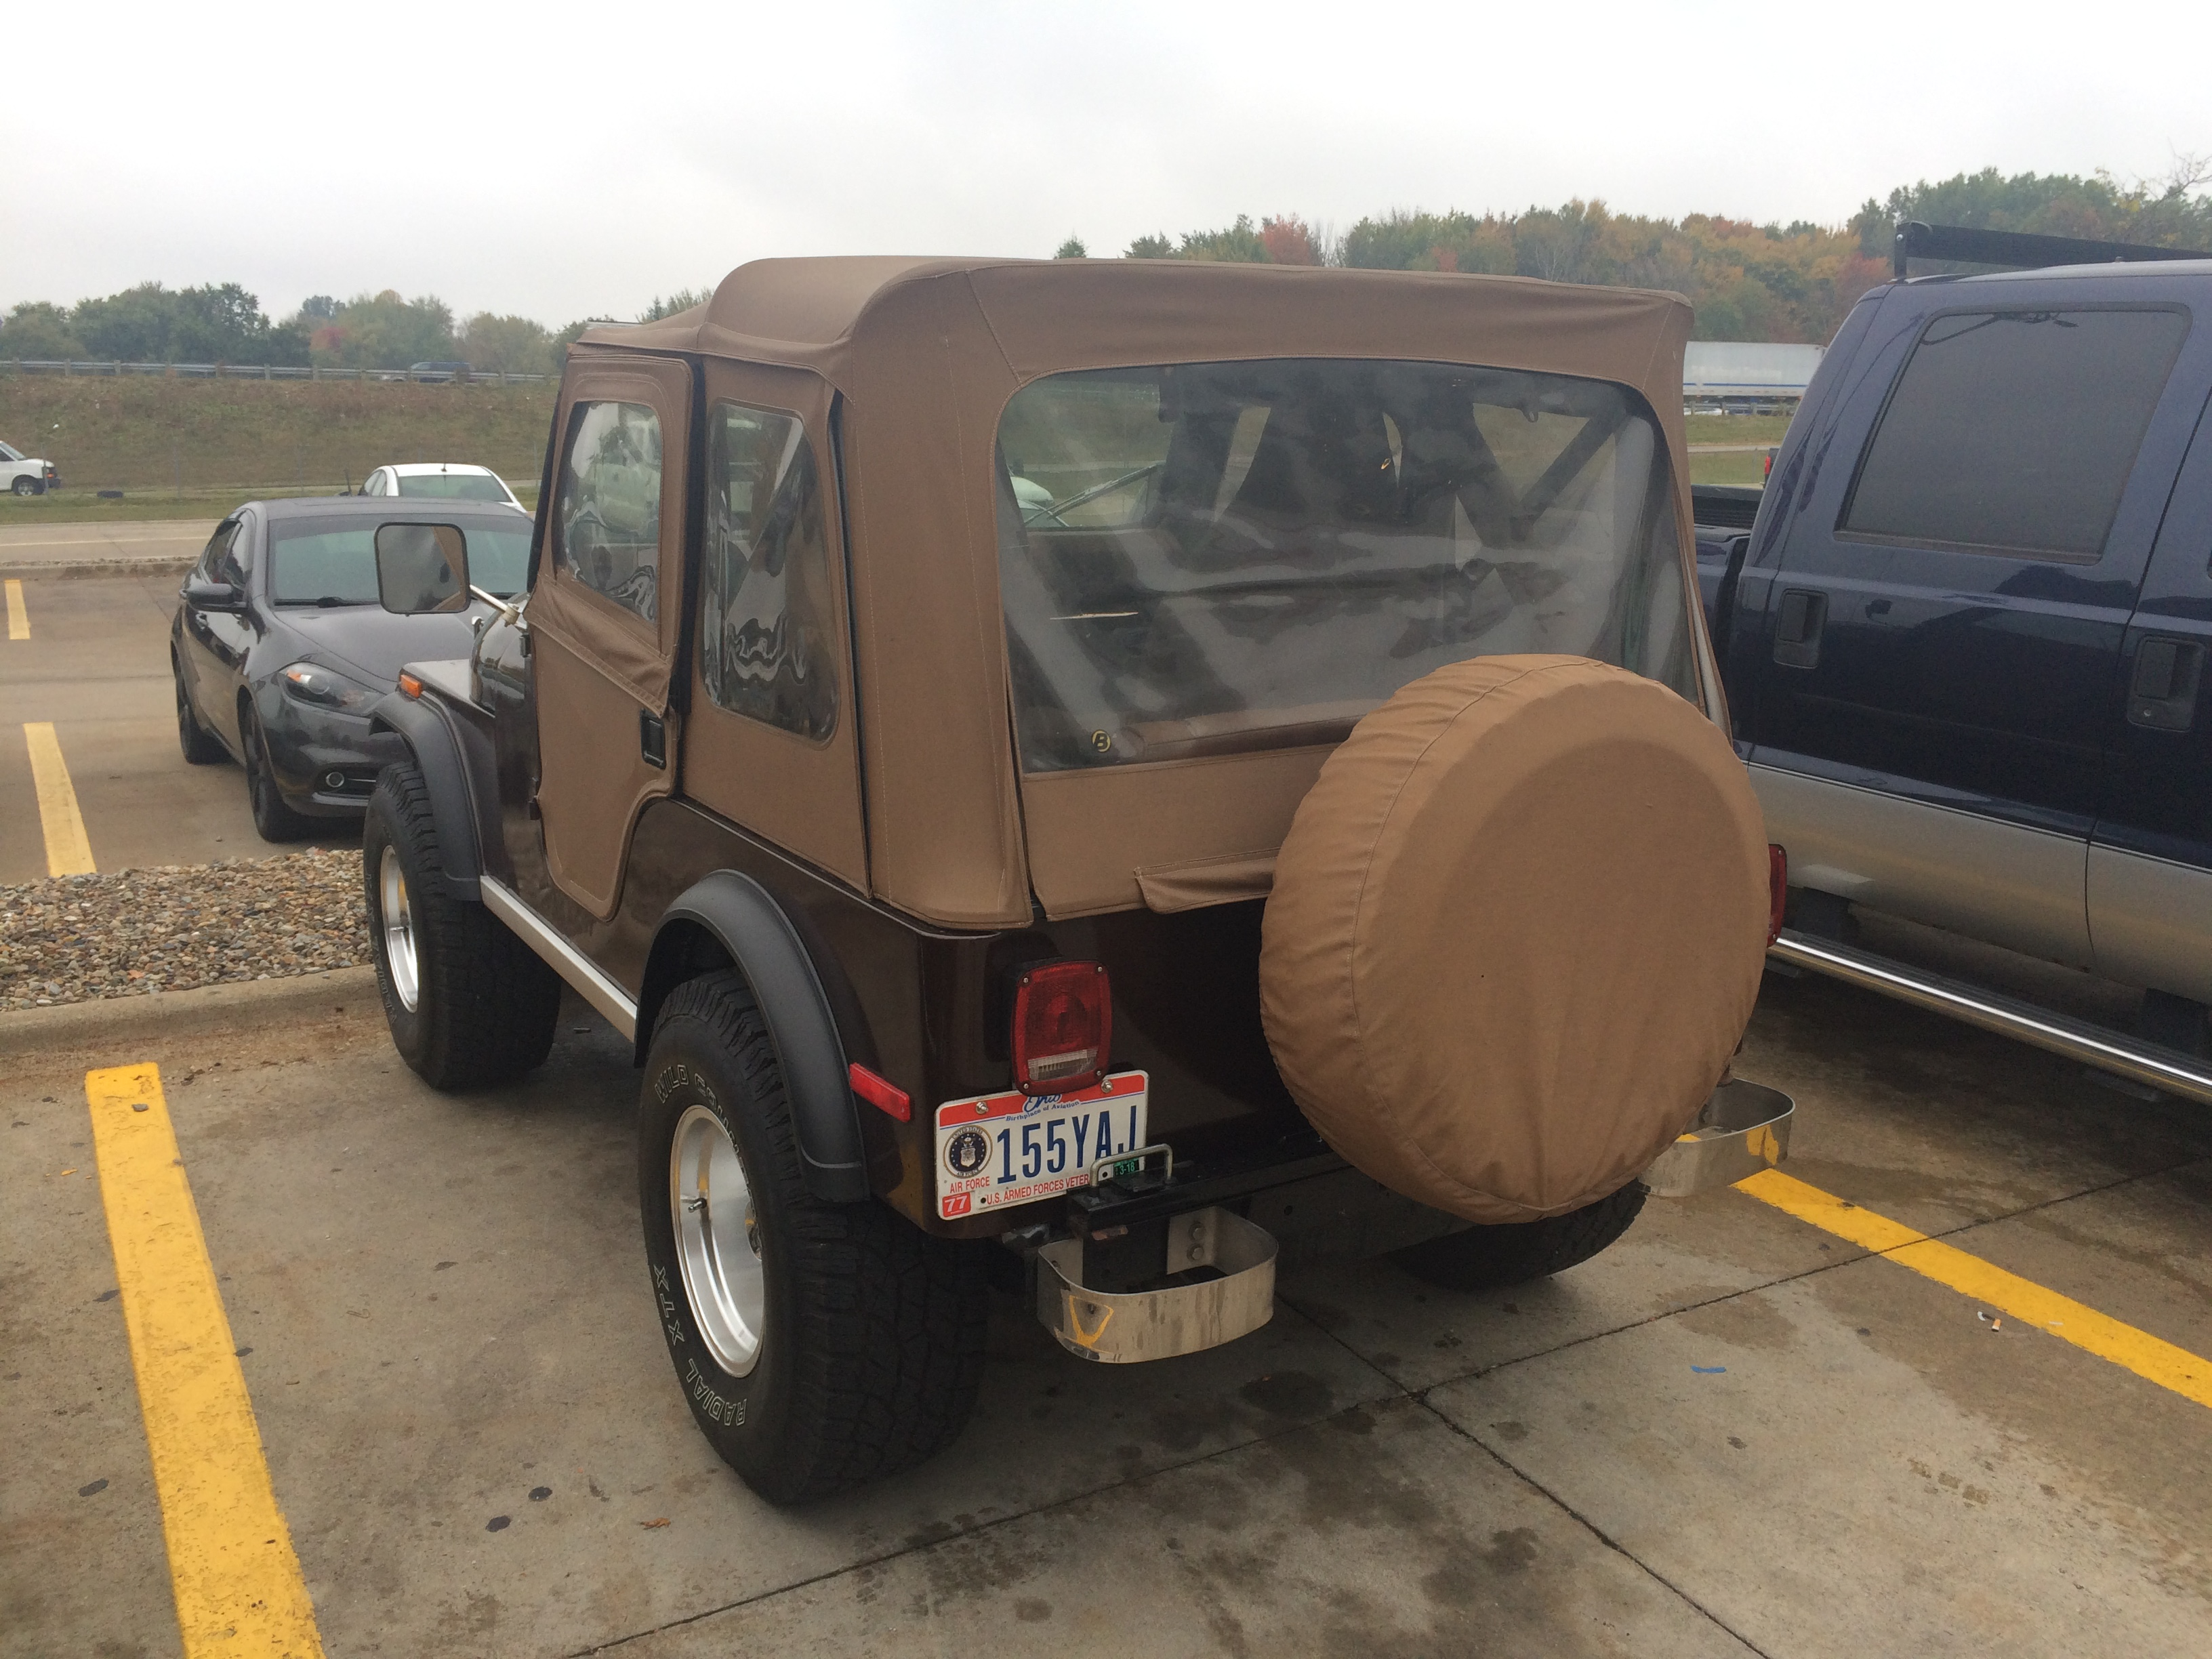 1977 Jeep CJ-5, Rear Driver's Side